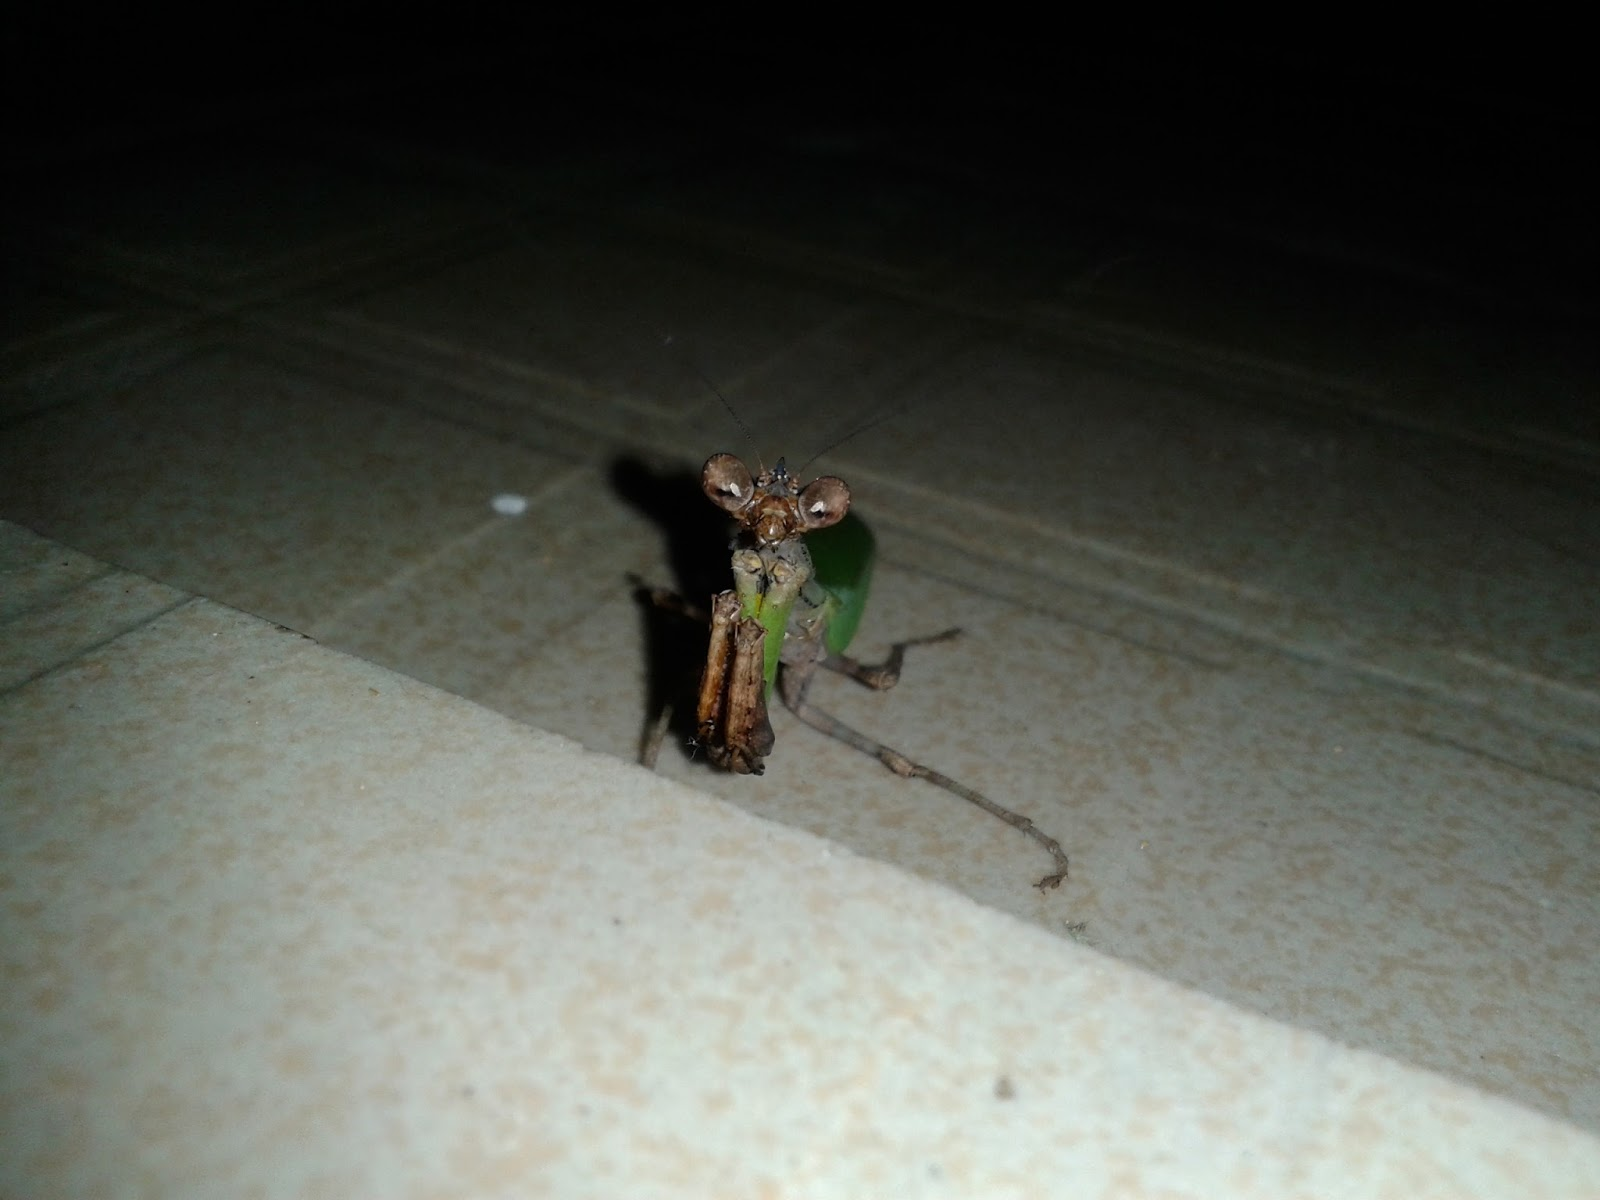 Flying beetles attracted to light